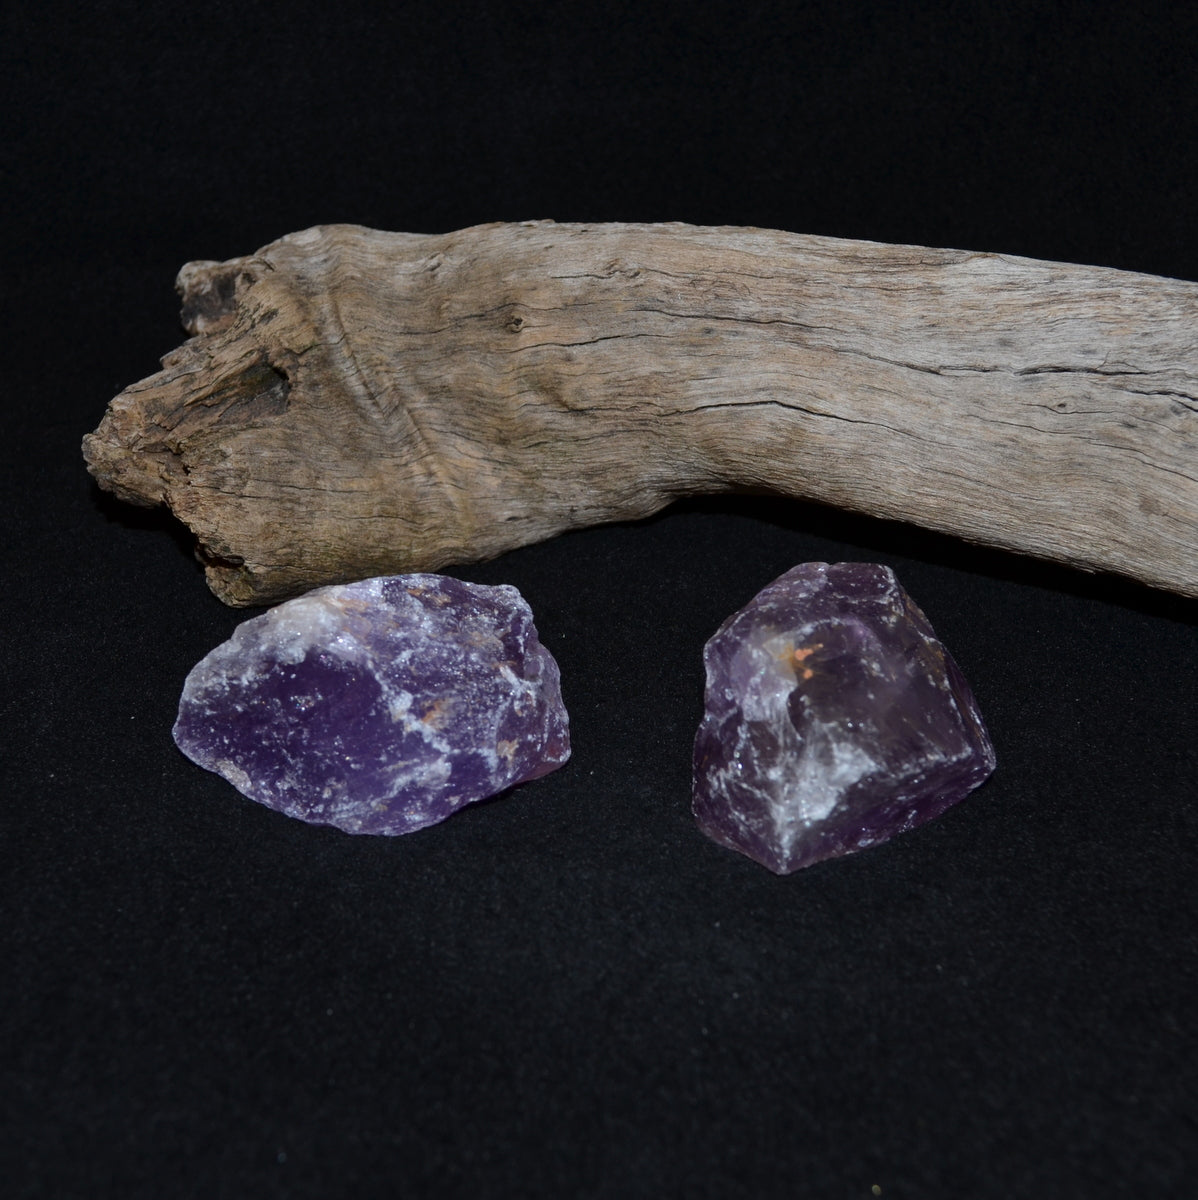 Amethyst Natural Chunks - Calm Intuition Addiction - Shop Now at Illiom Crystals - Afterpay Available